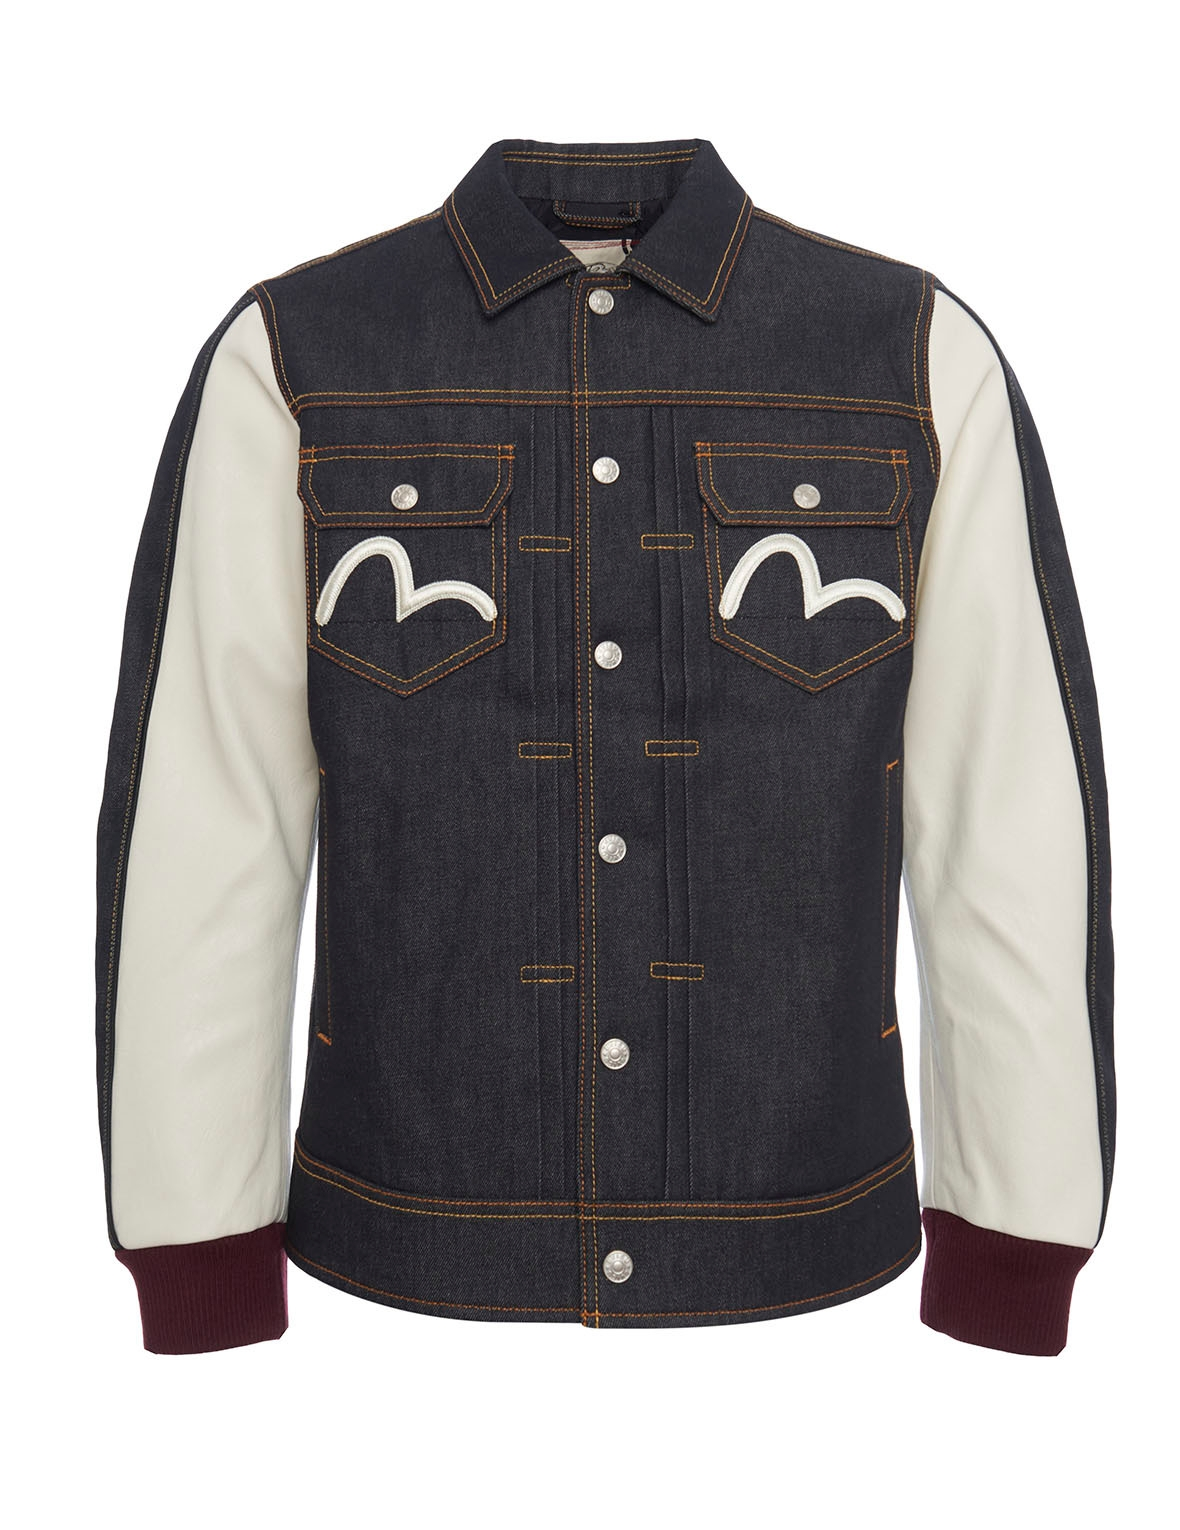 EVISU Hybrid Denim Jacket With Kamon Applique